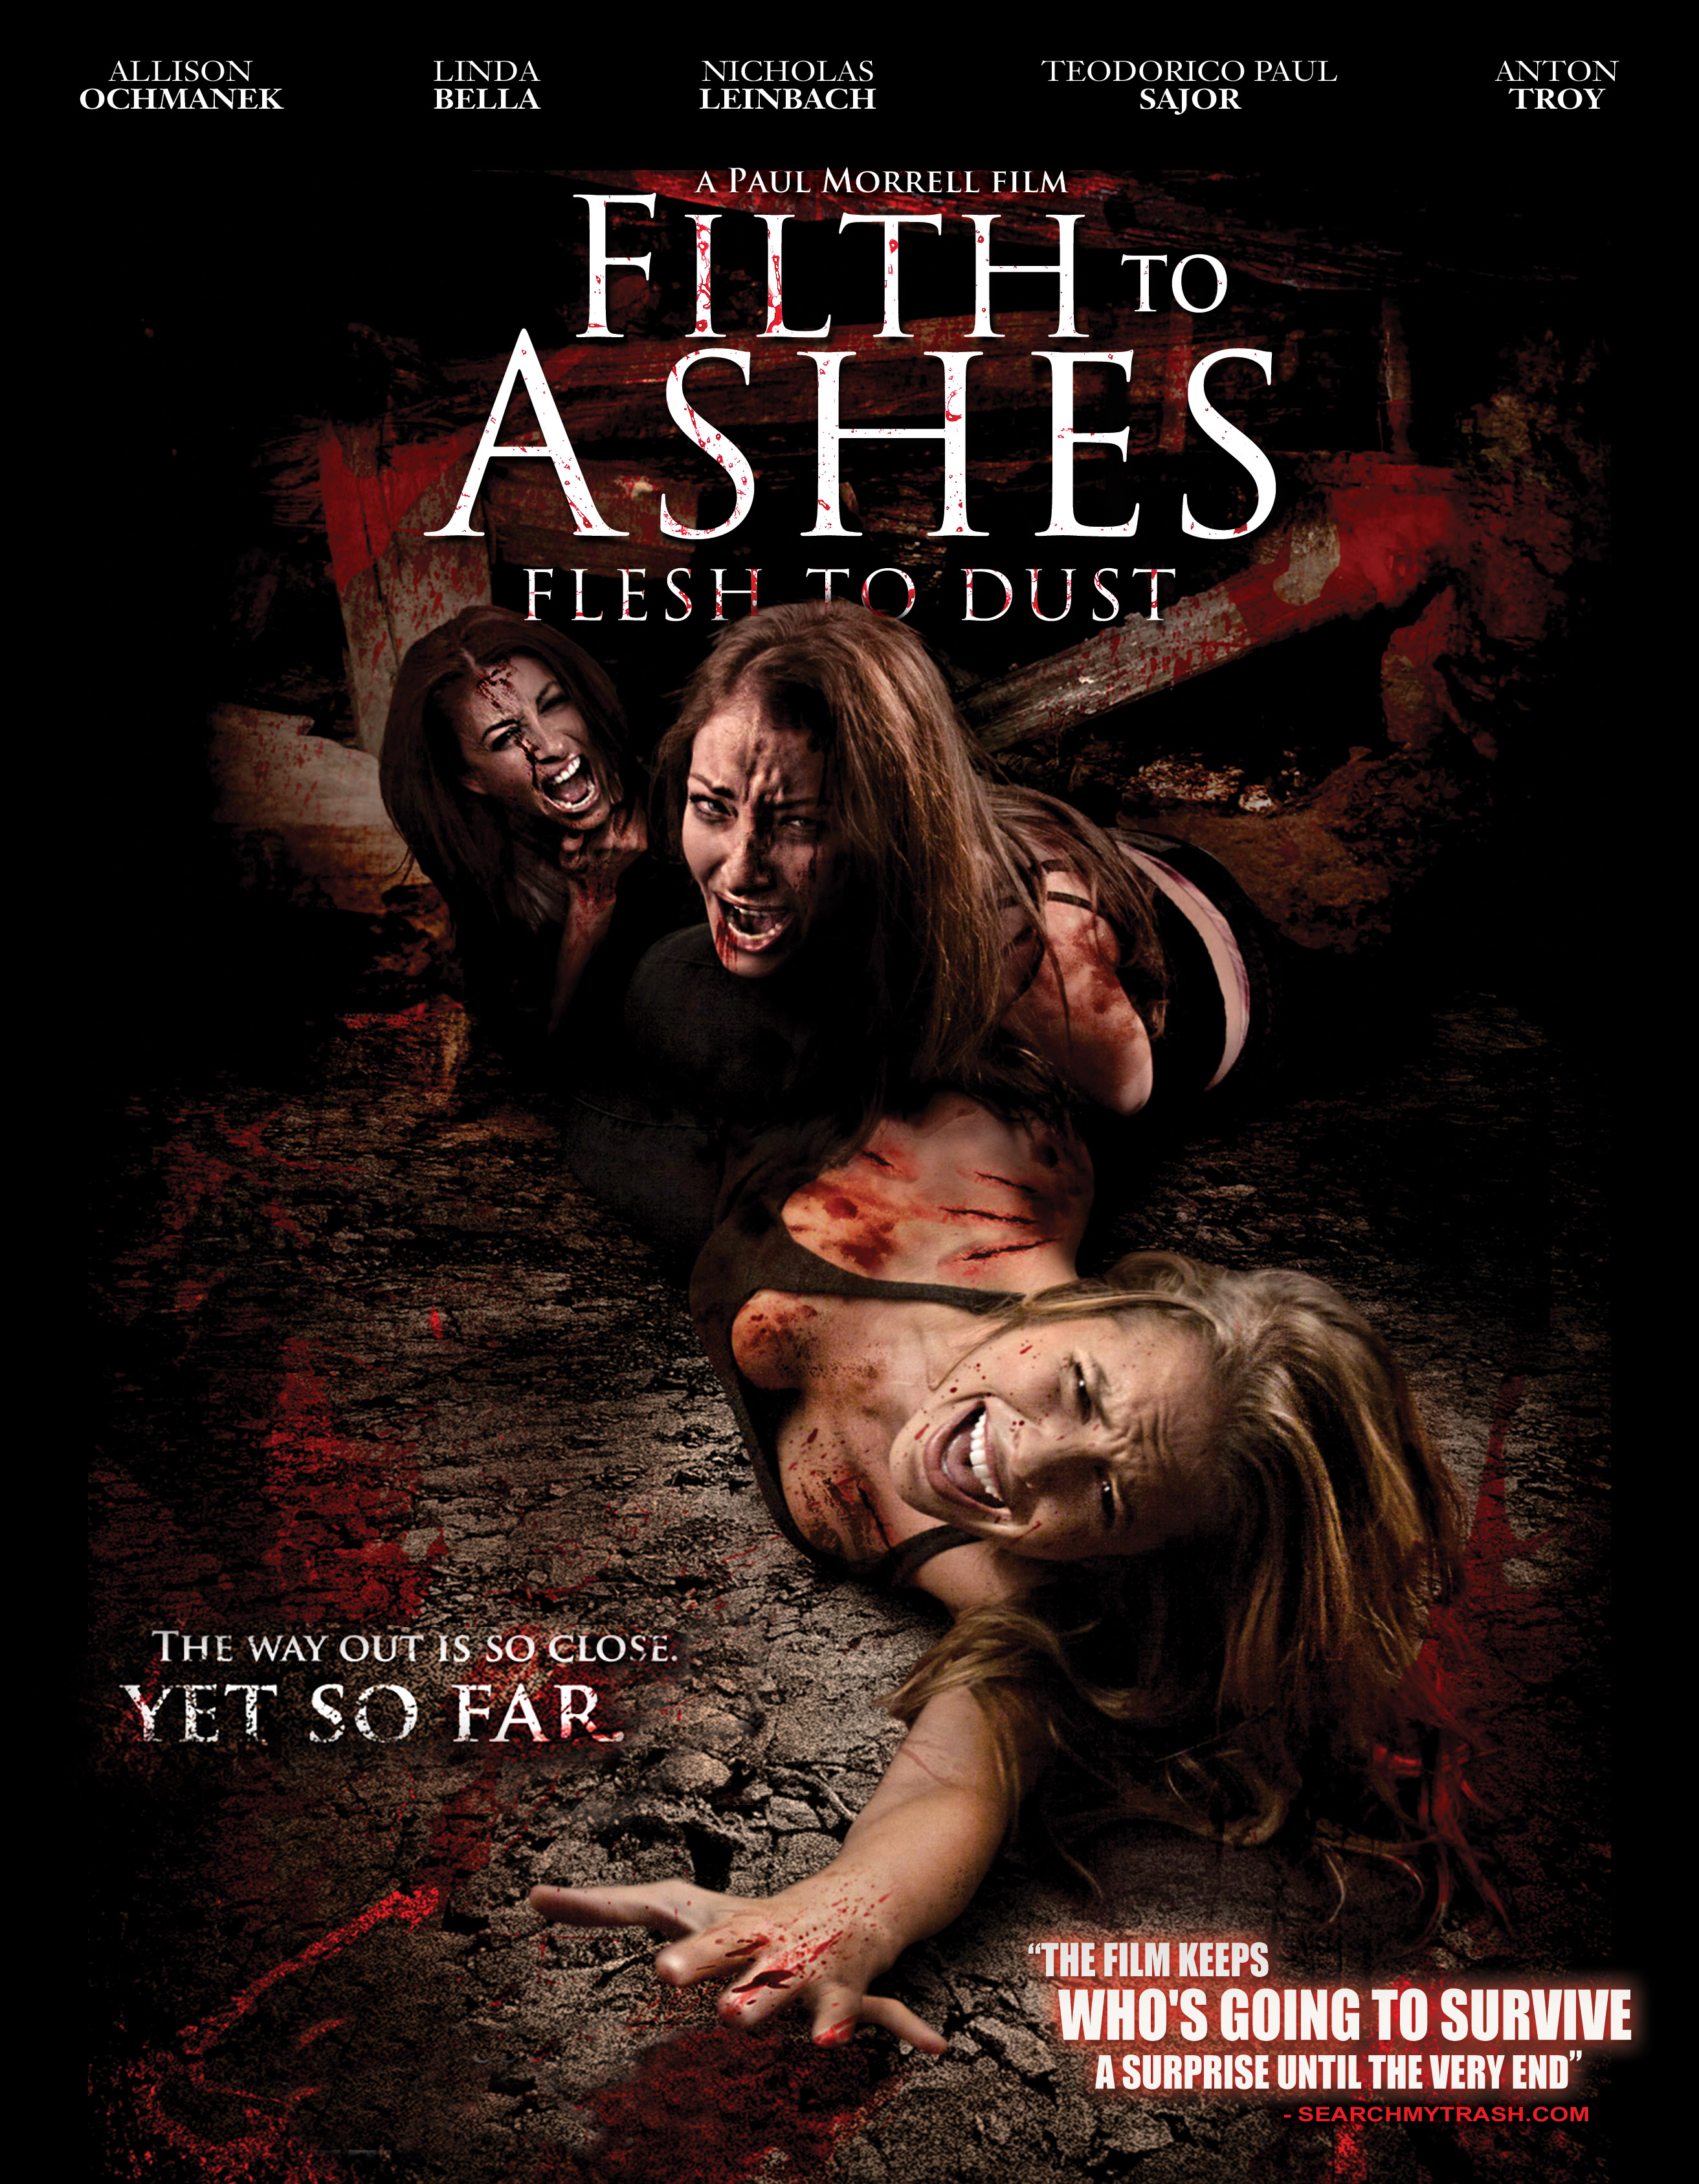 Beautiful Wallpaper Movie Filth - filth-to-ashes-flesh-to-dust_full  Collection_83641.jpg